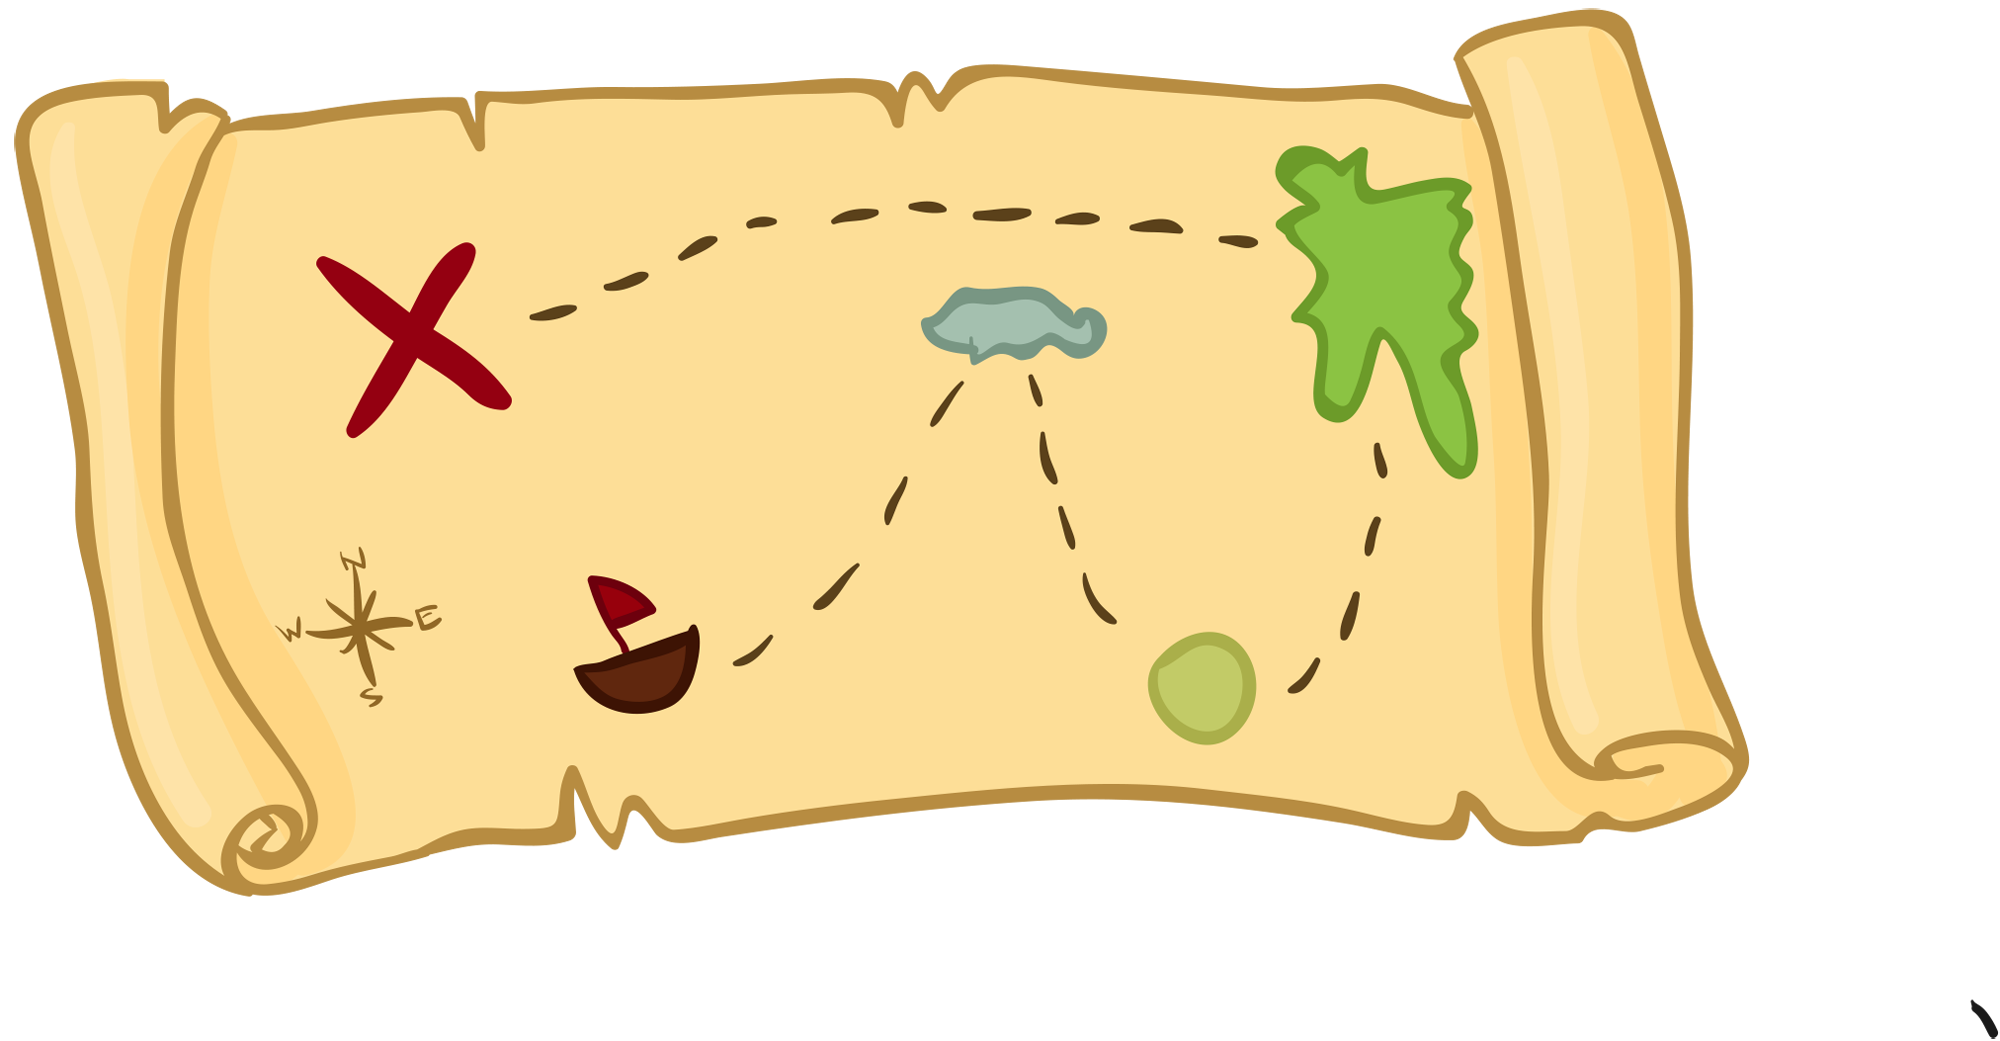 transparent-maps-treasure-hunt-15